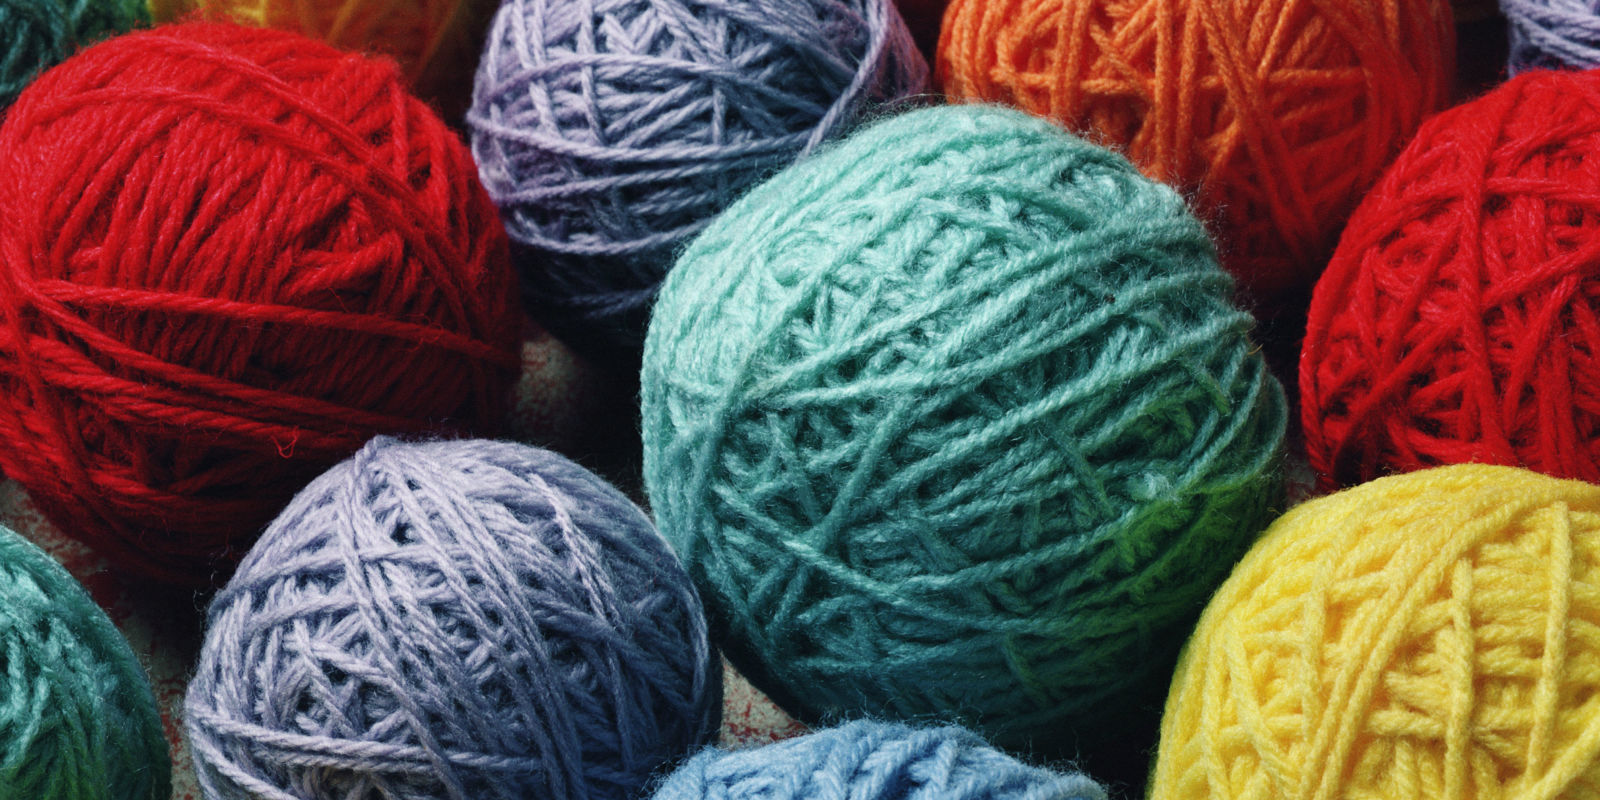 ball of yarn - photo #17